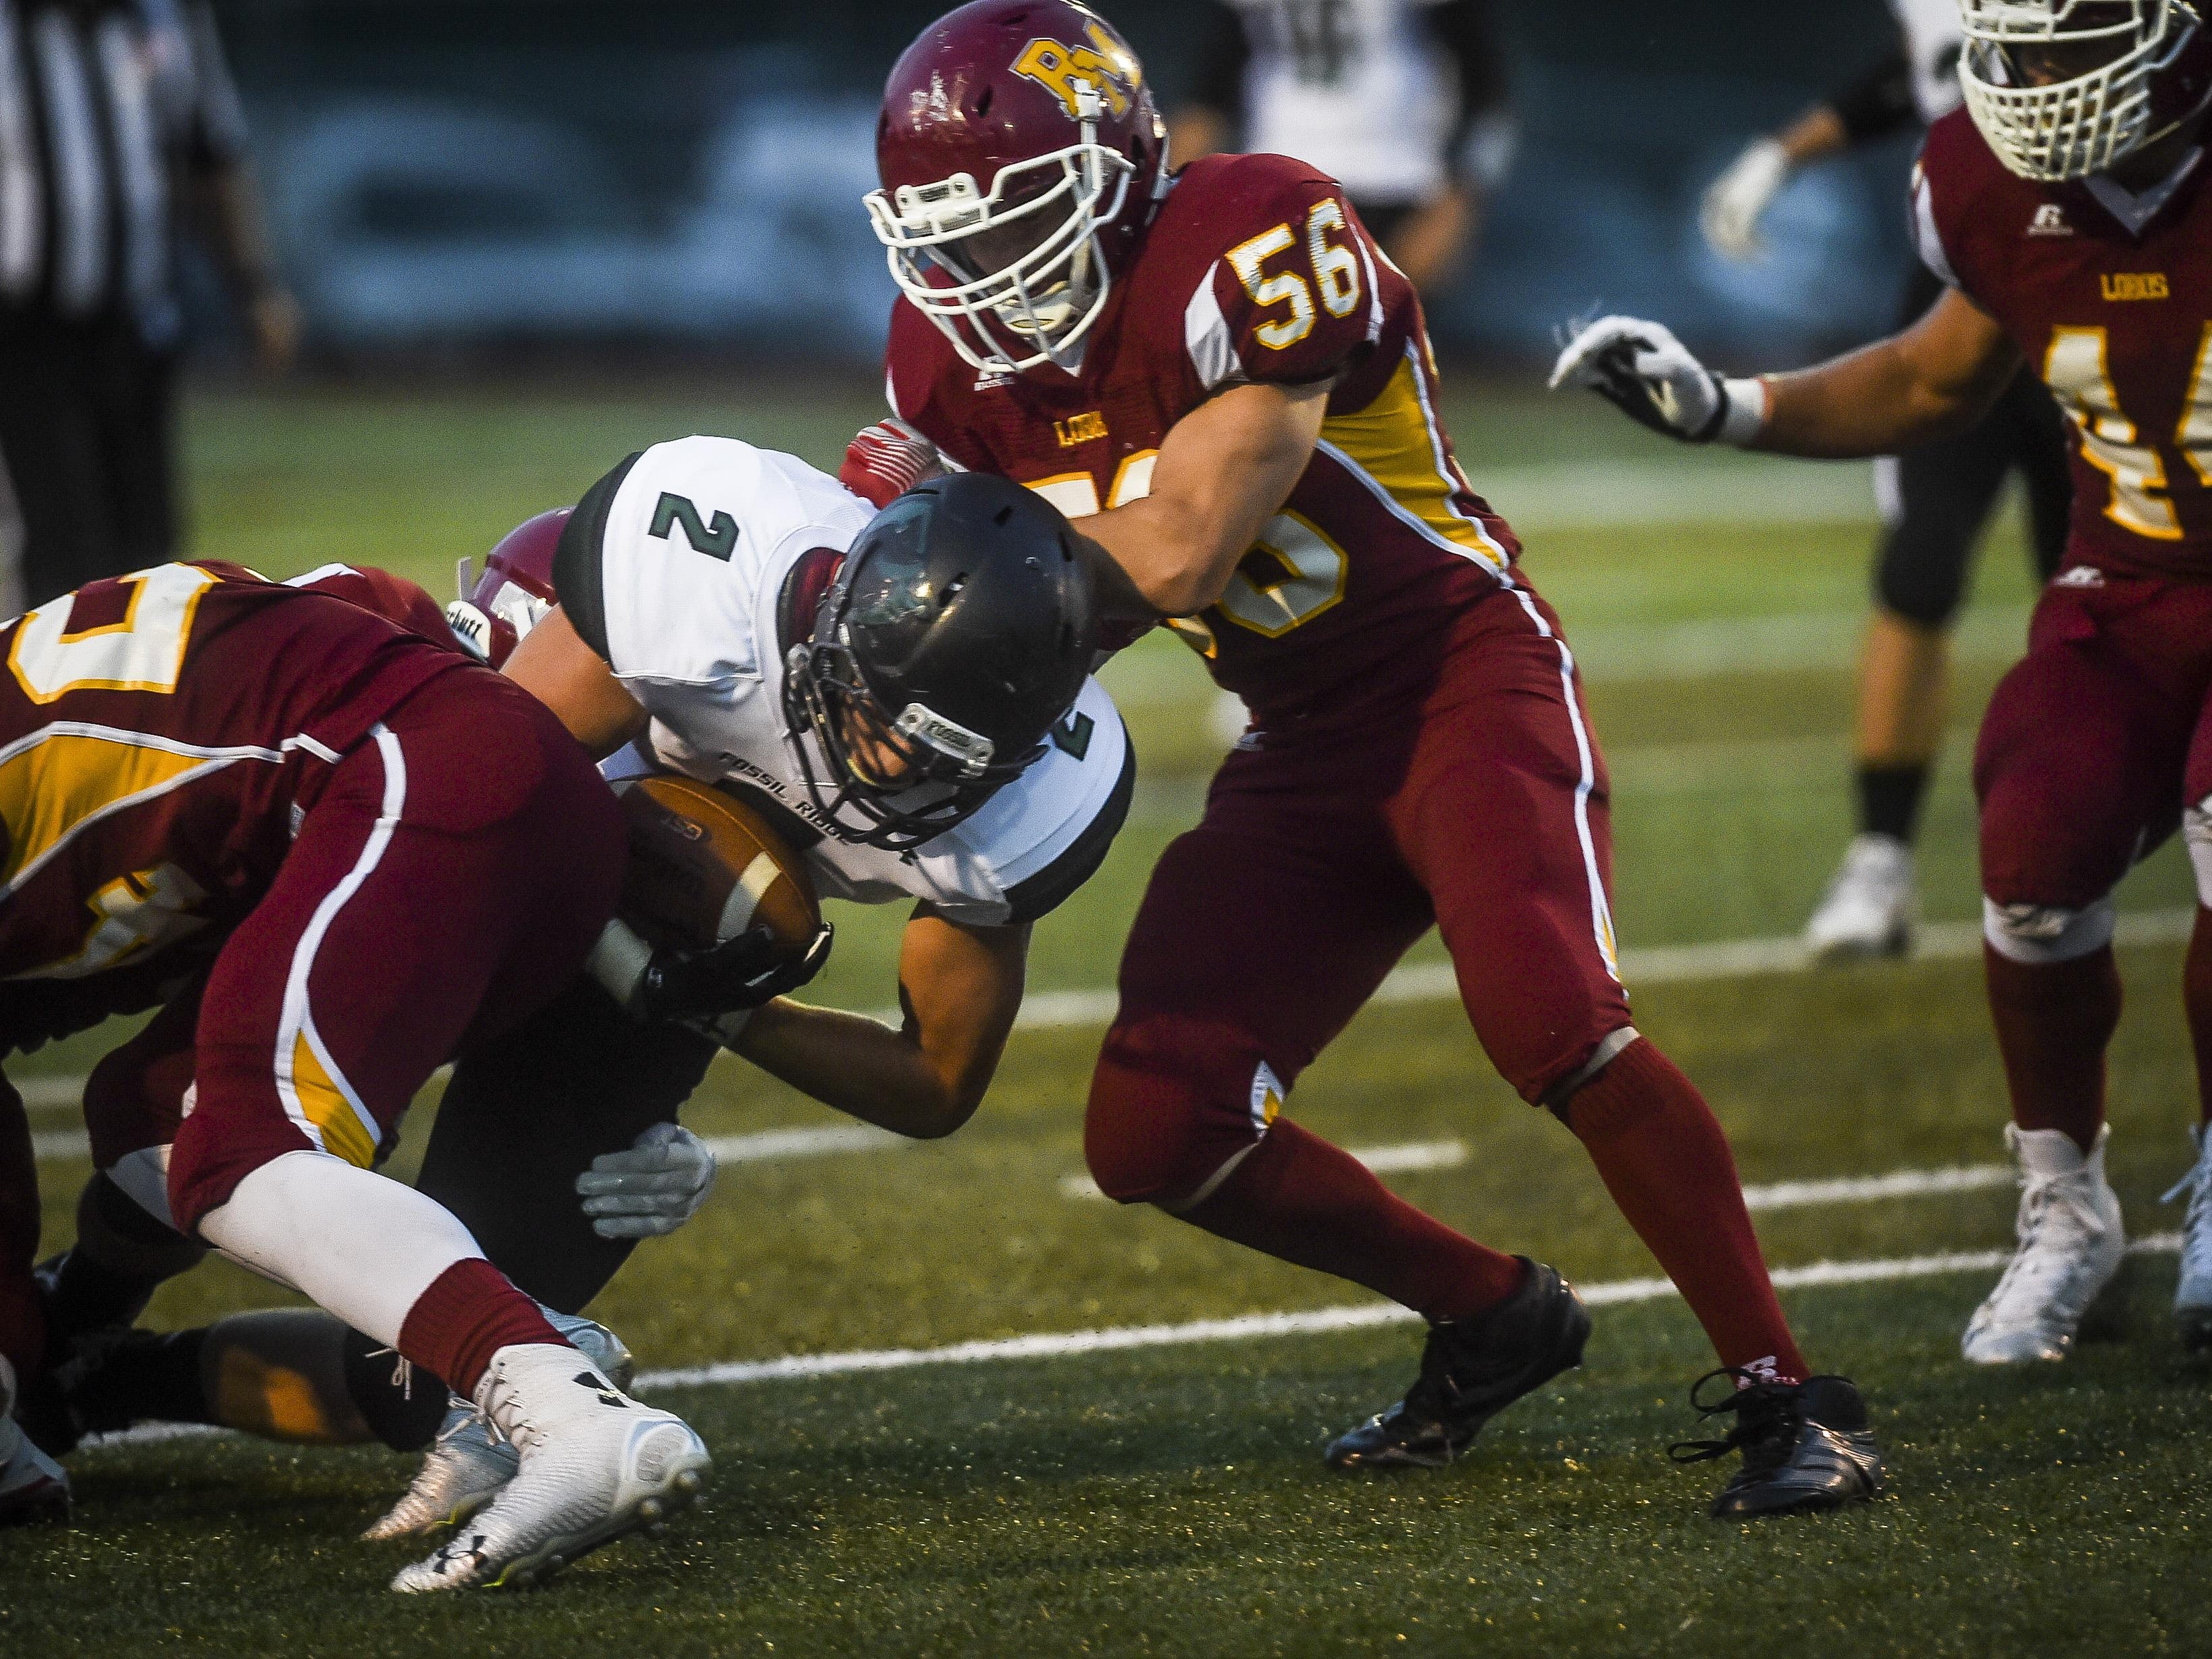 The Fossil Ridge and Rocky Mountain football teams play in Week 4 of the high school football season.